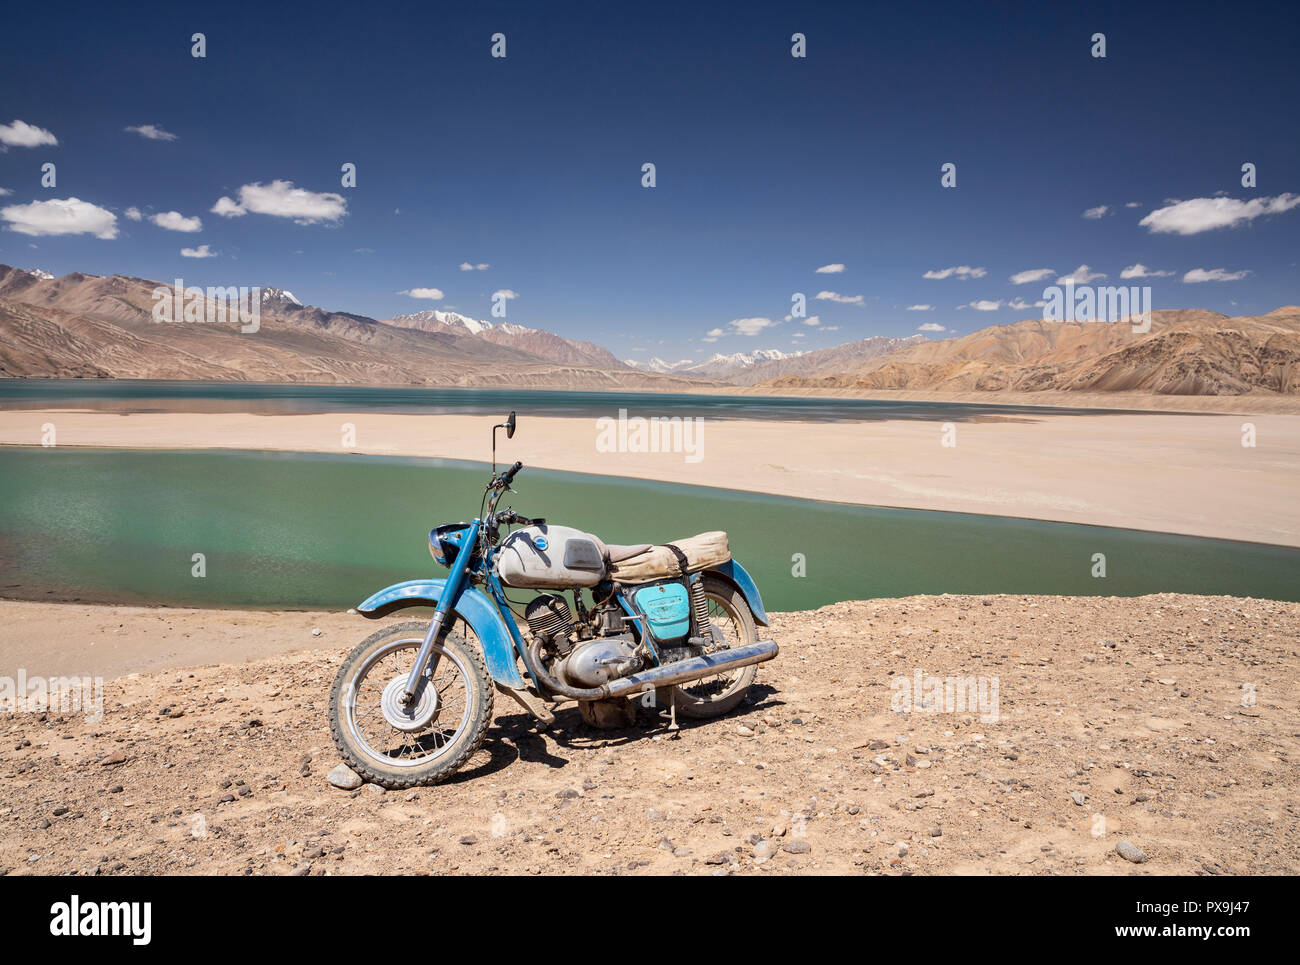 Couple of old Russian motorcycles parked at Yashikul Lake in the Upper Gunt Valley, Pamir Mountains, Tajikistan - Stock Image